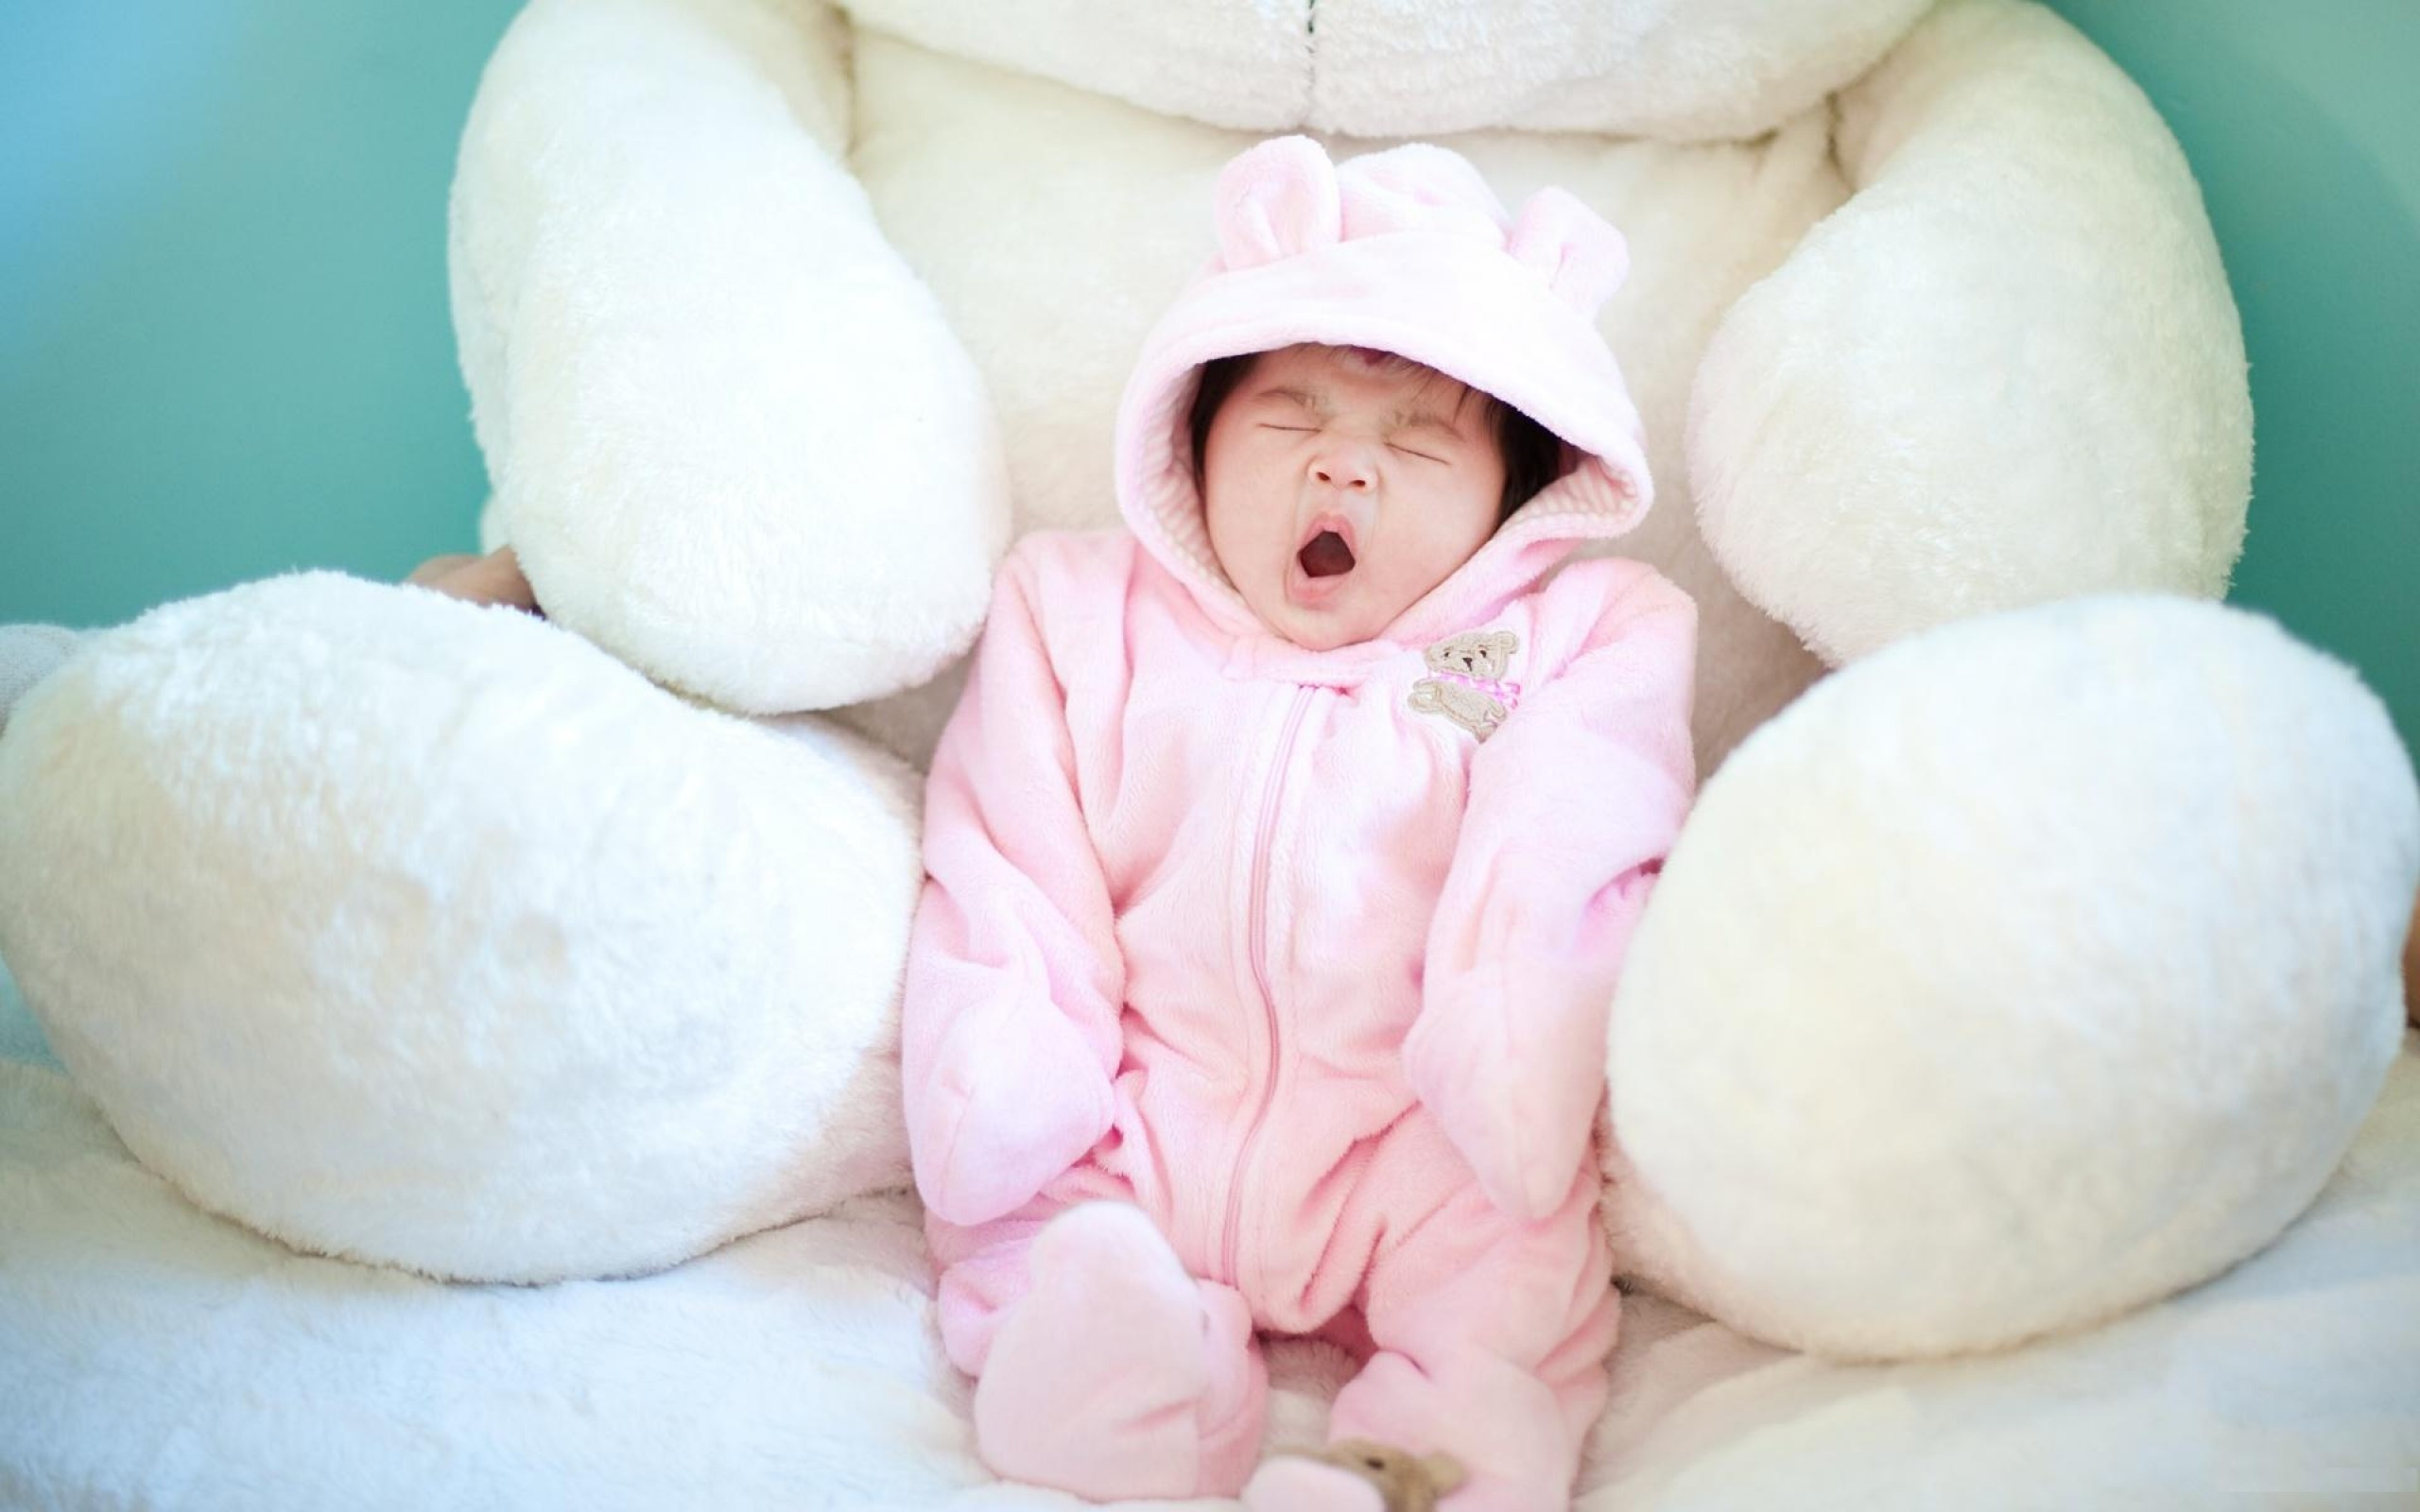 baby background - wallpaper, high definition, high quality, widescreen